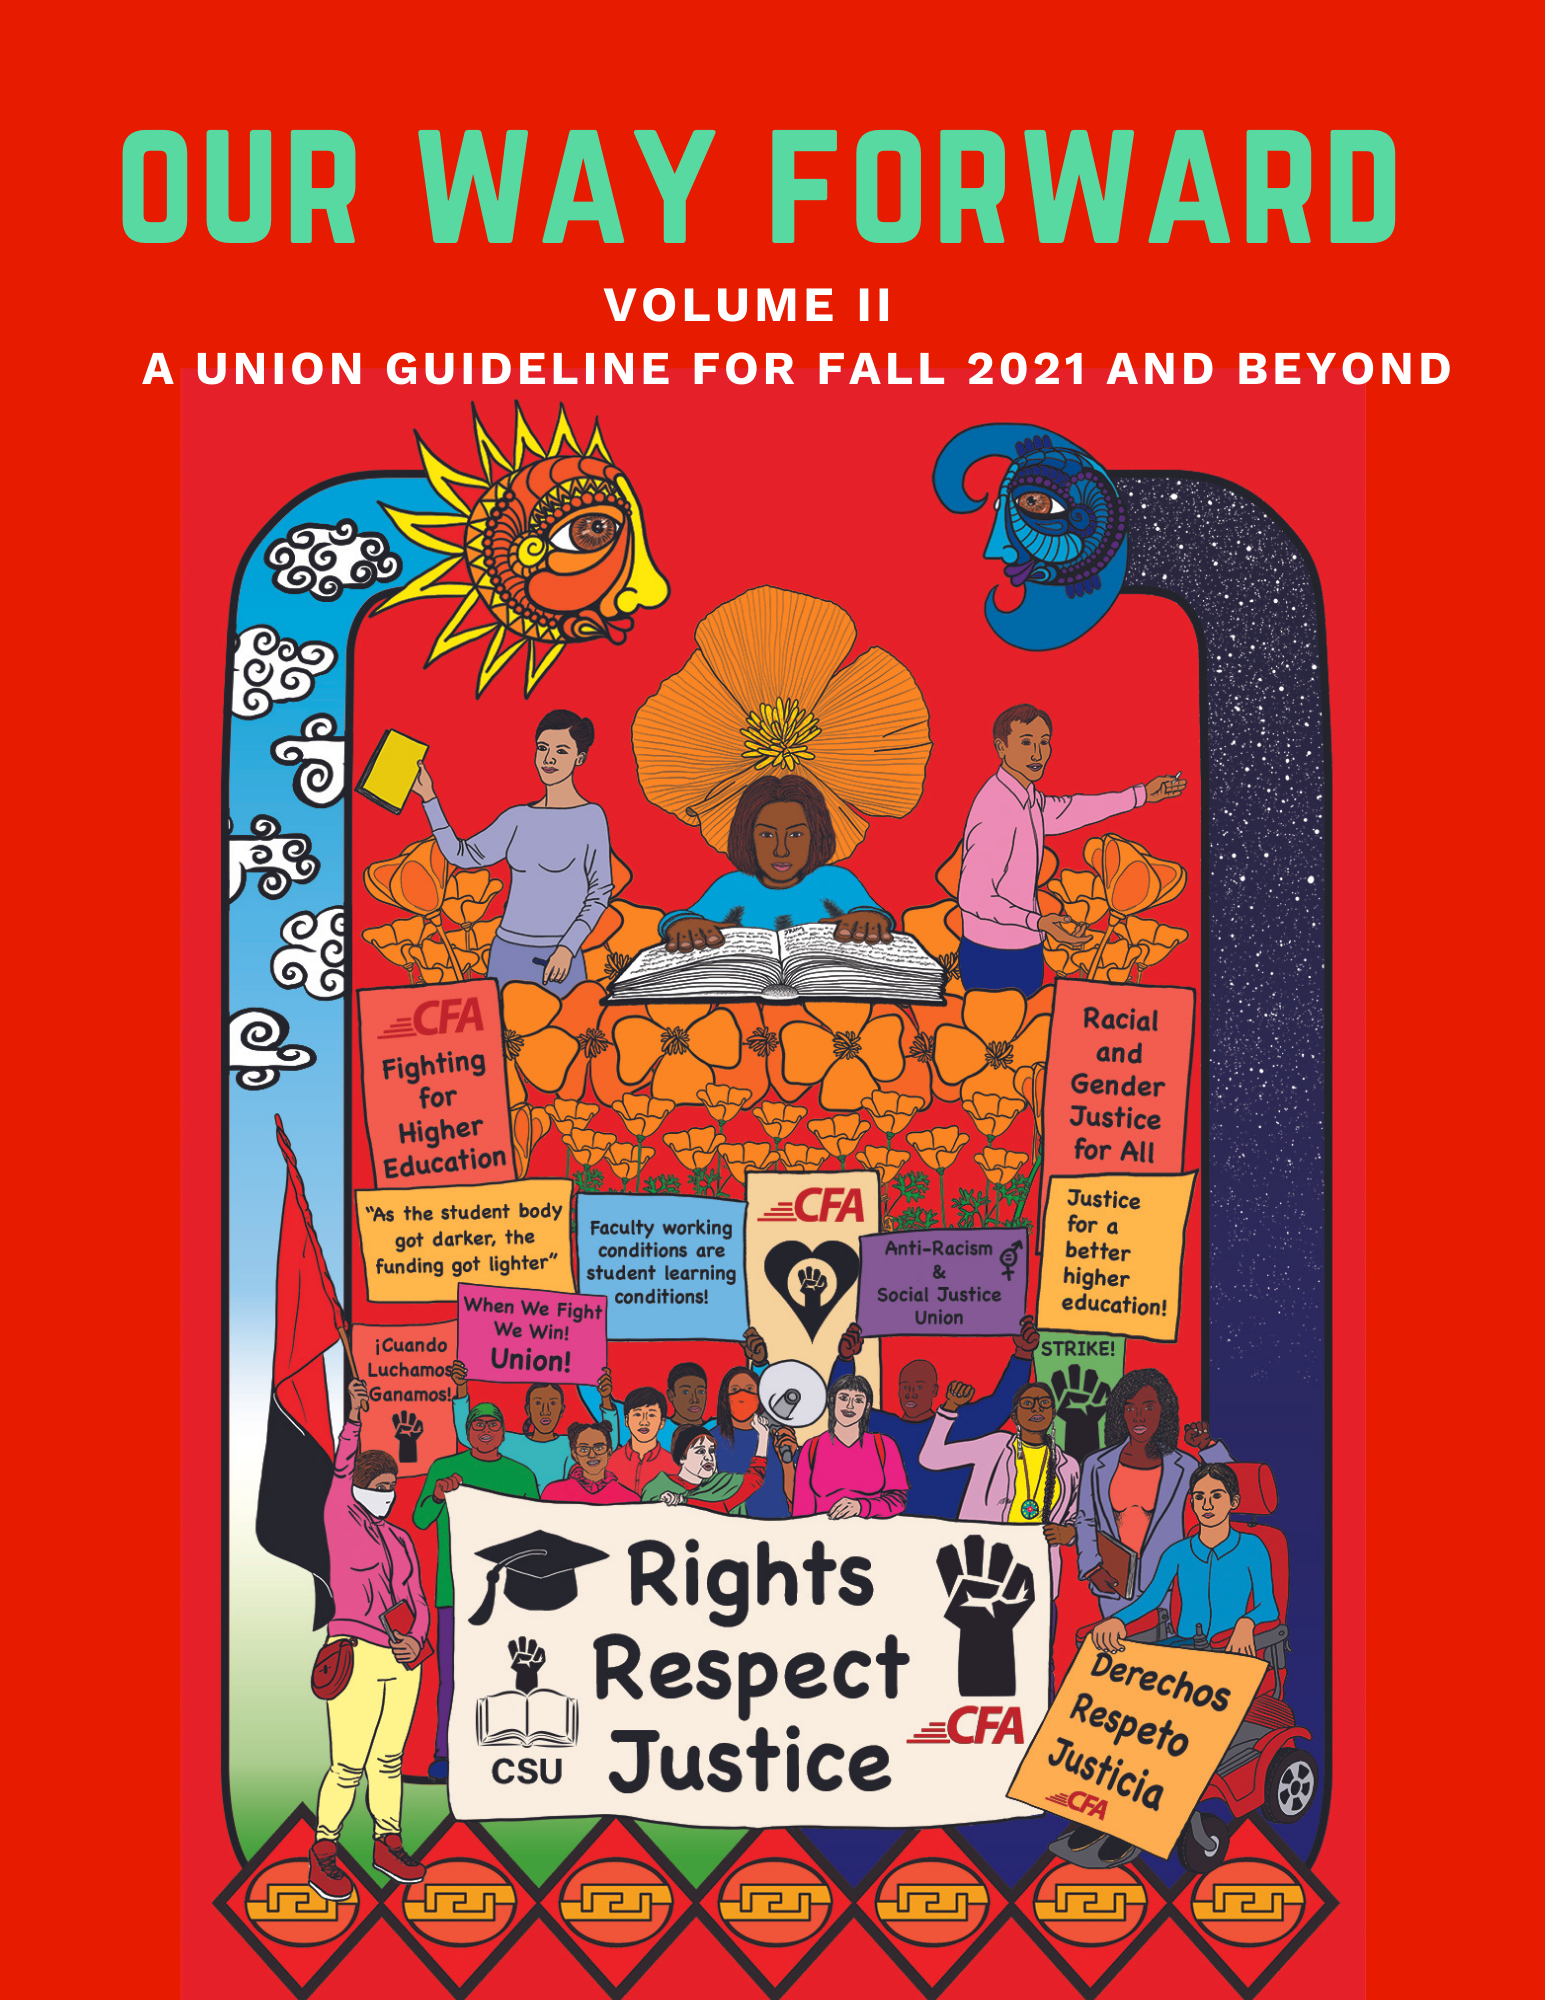 Cover photo for CFA's second edition of Our Way Forward, a union guideline for Fall 2021 and beyond.